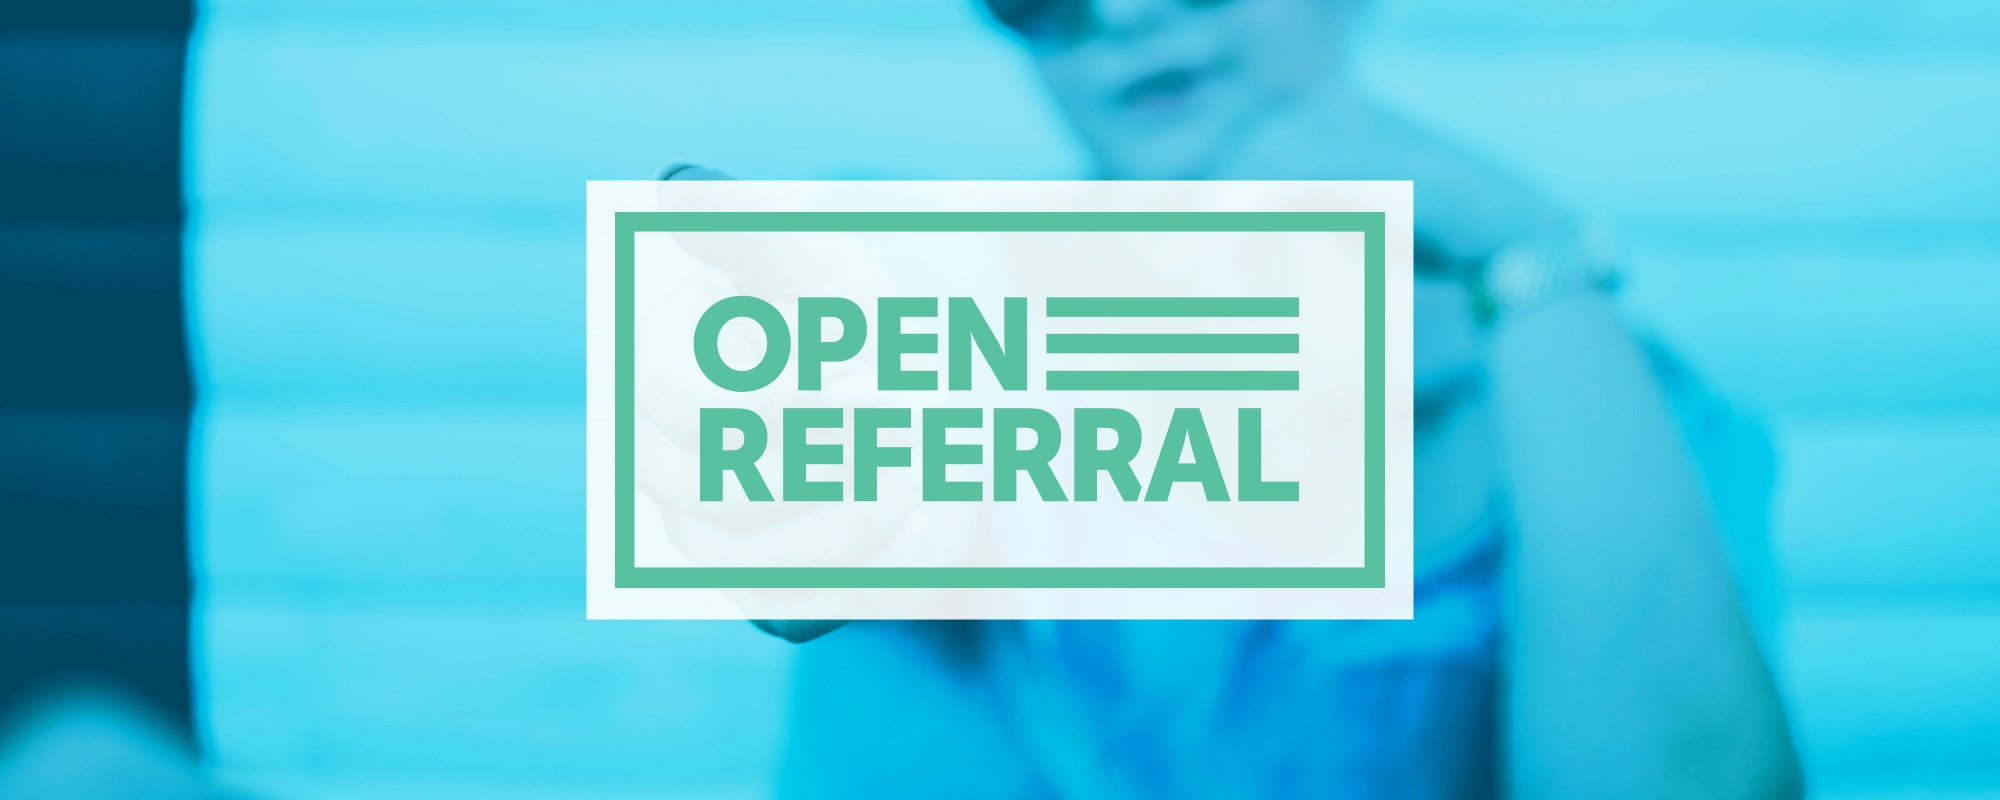 open-referral-features-connect-211